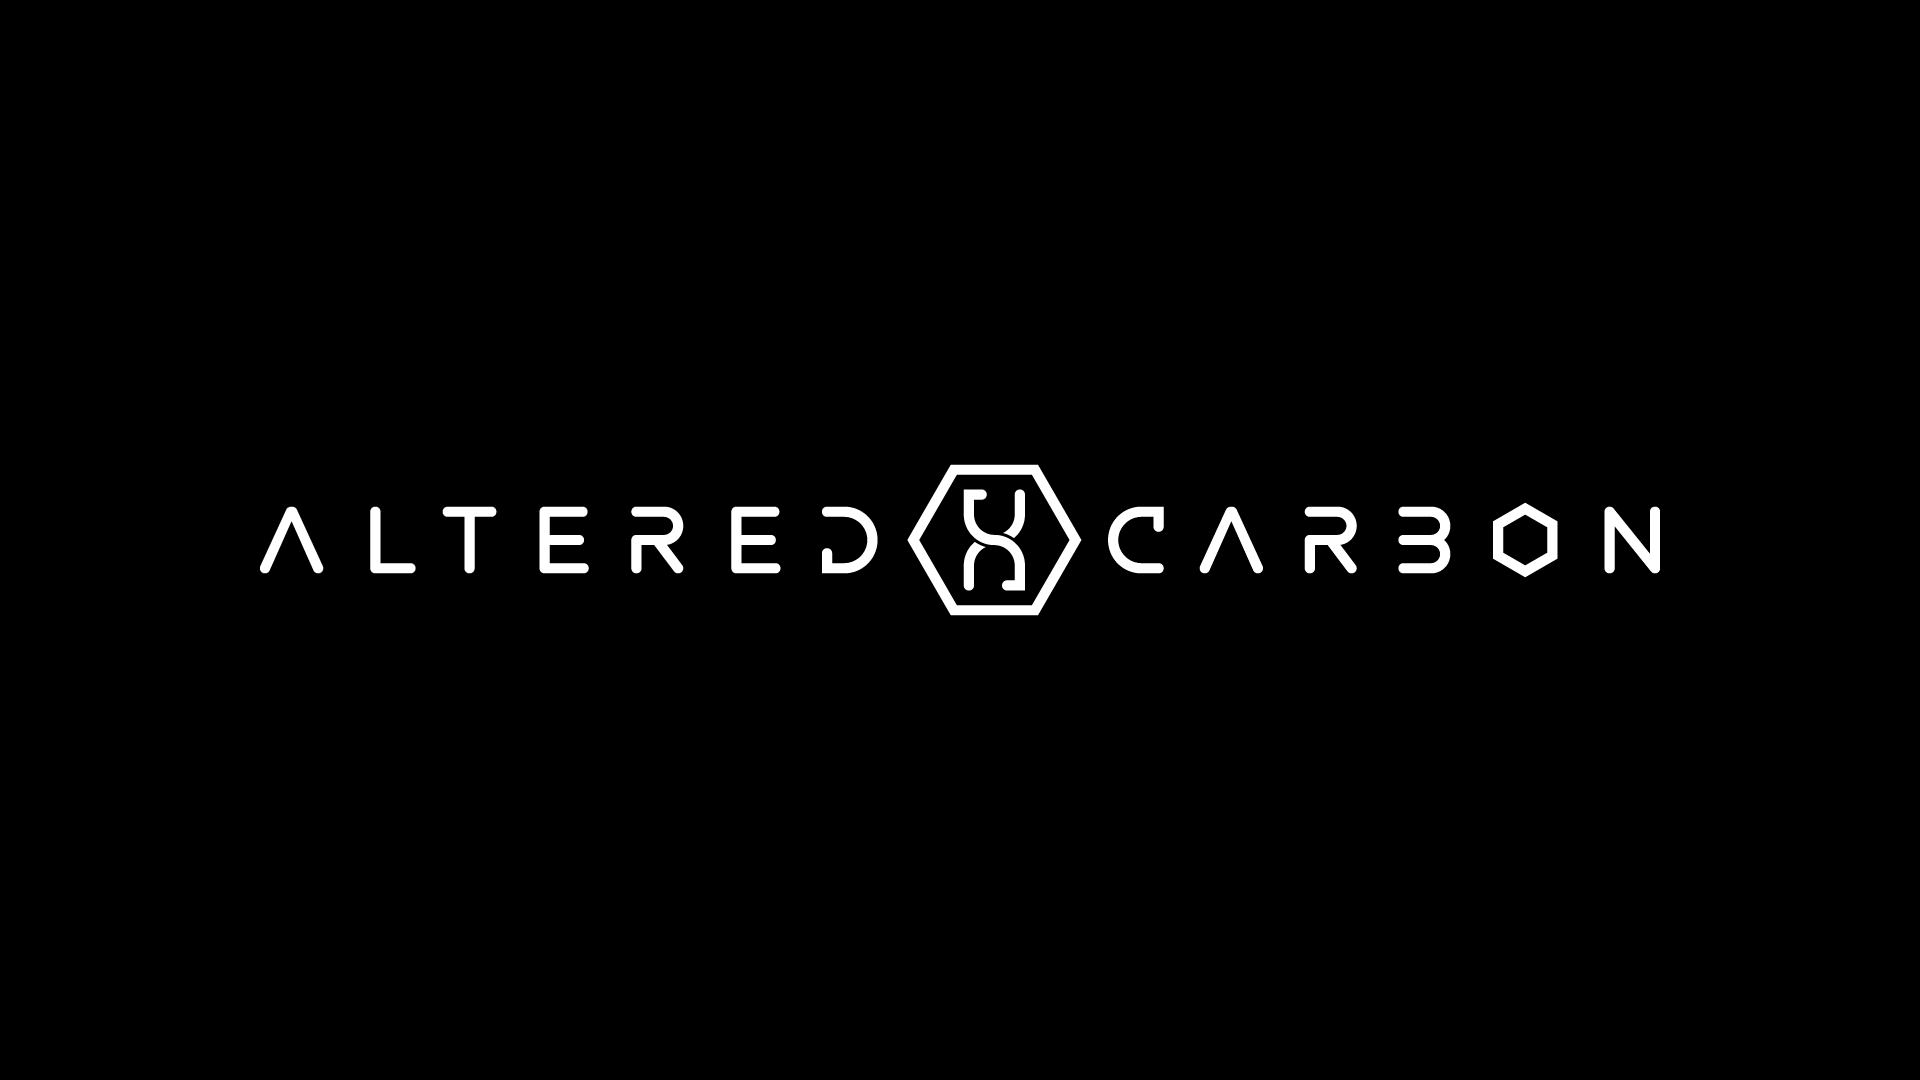 altered carbon logo wallpaper 62905